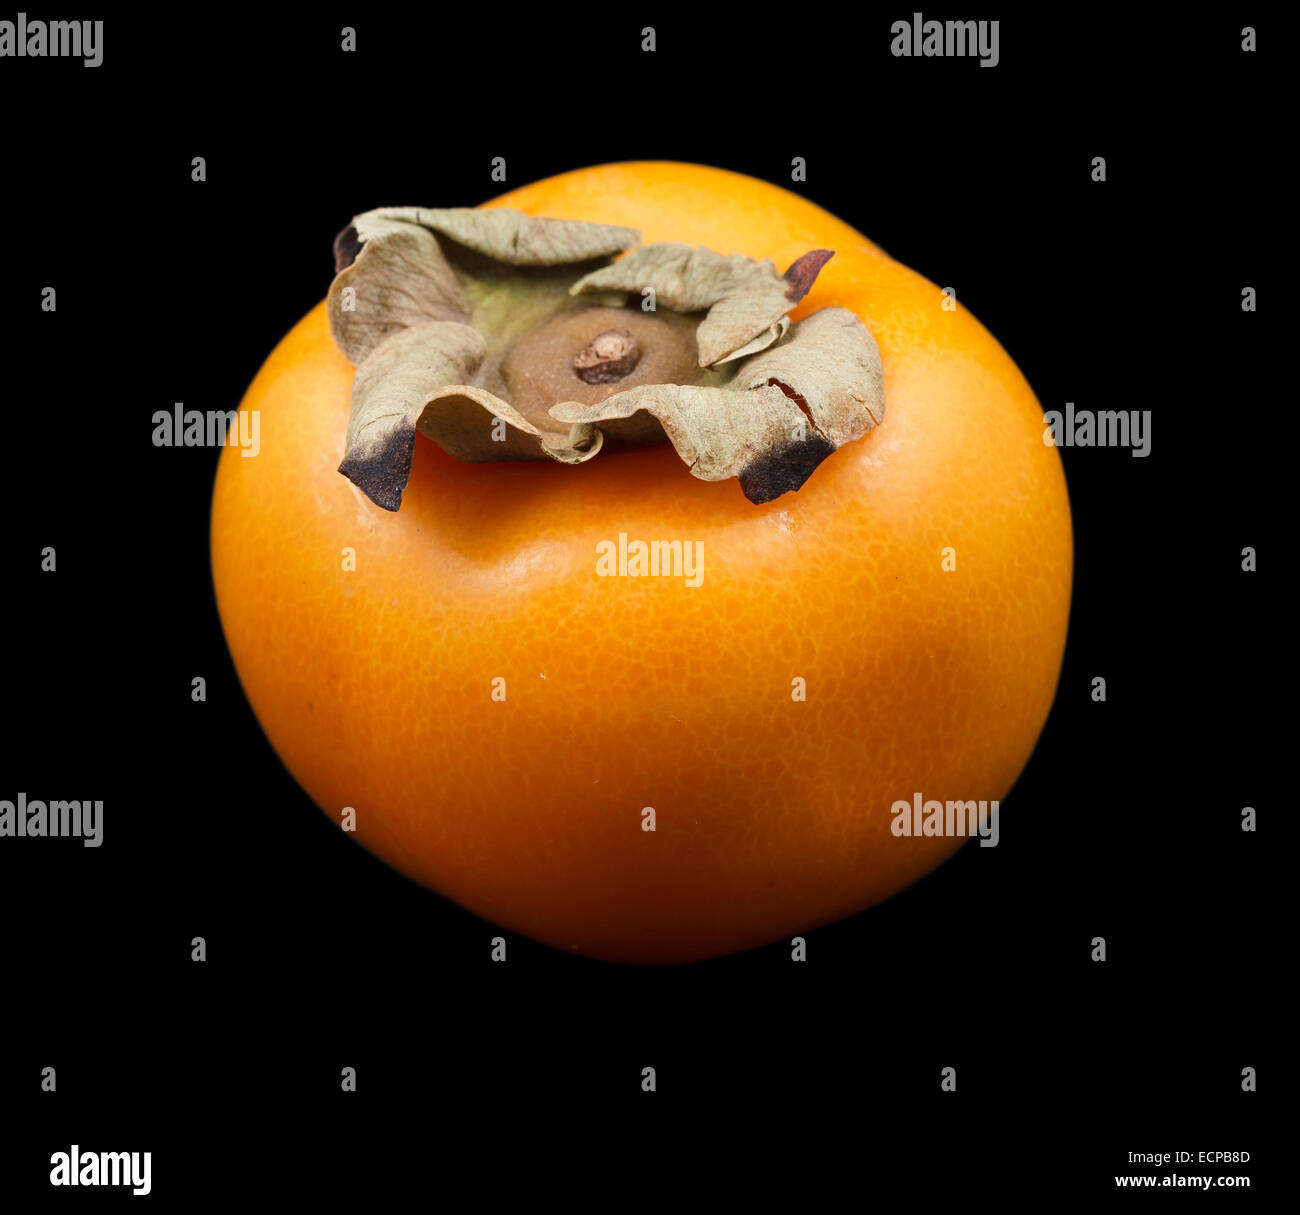 One persimmon fruit - Stock Image